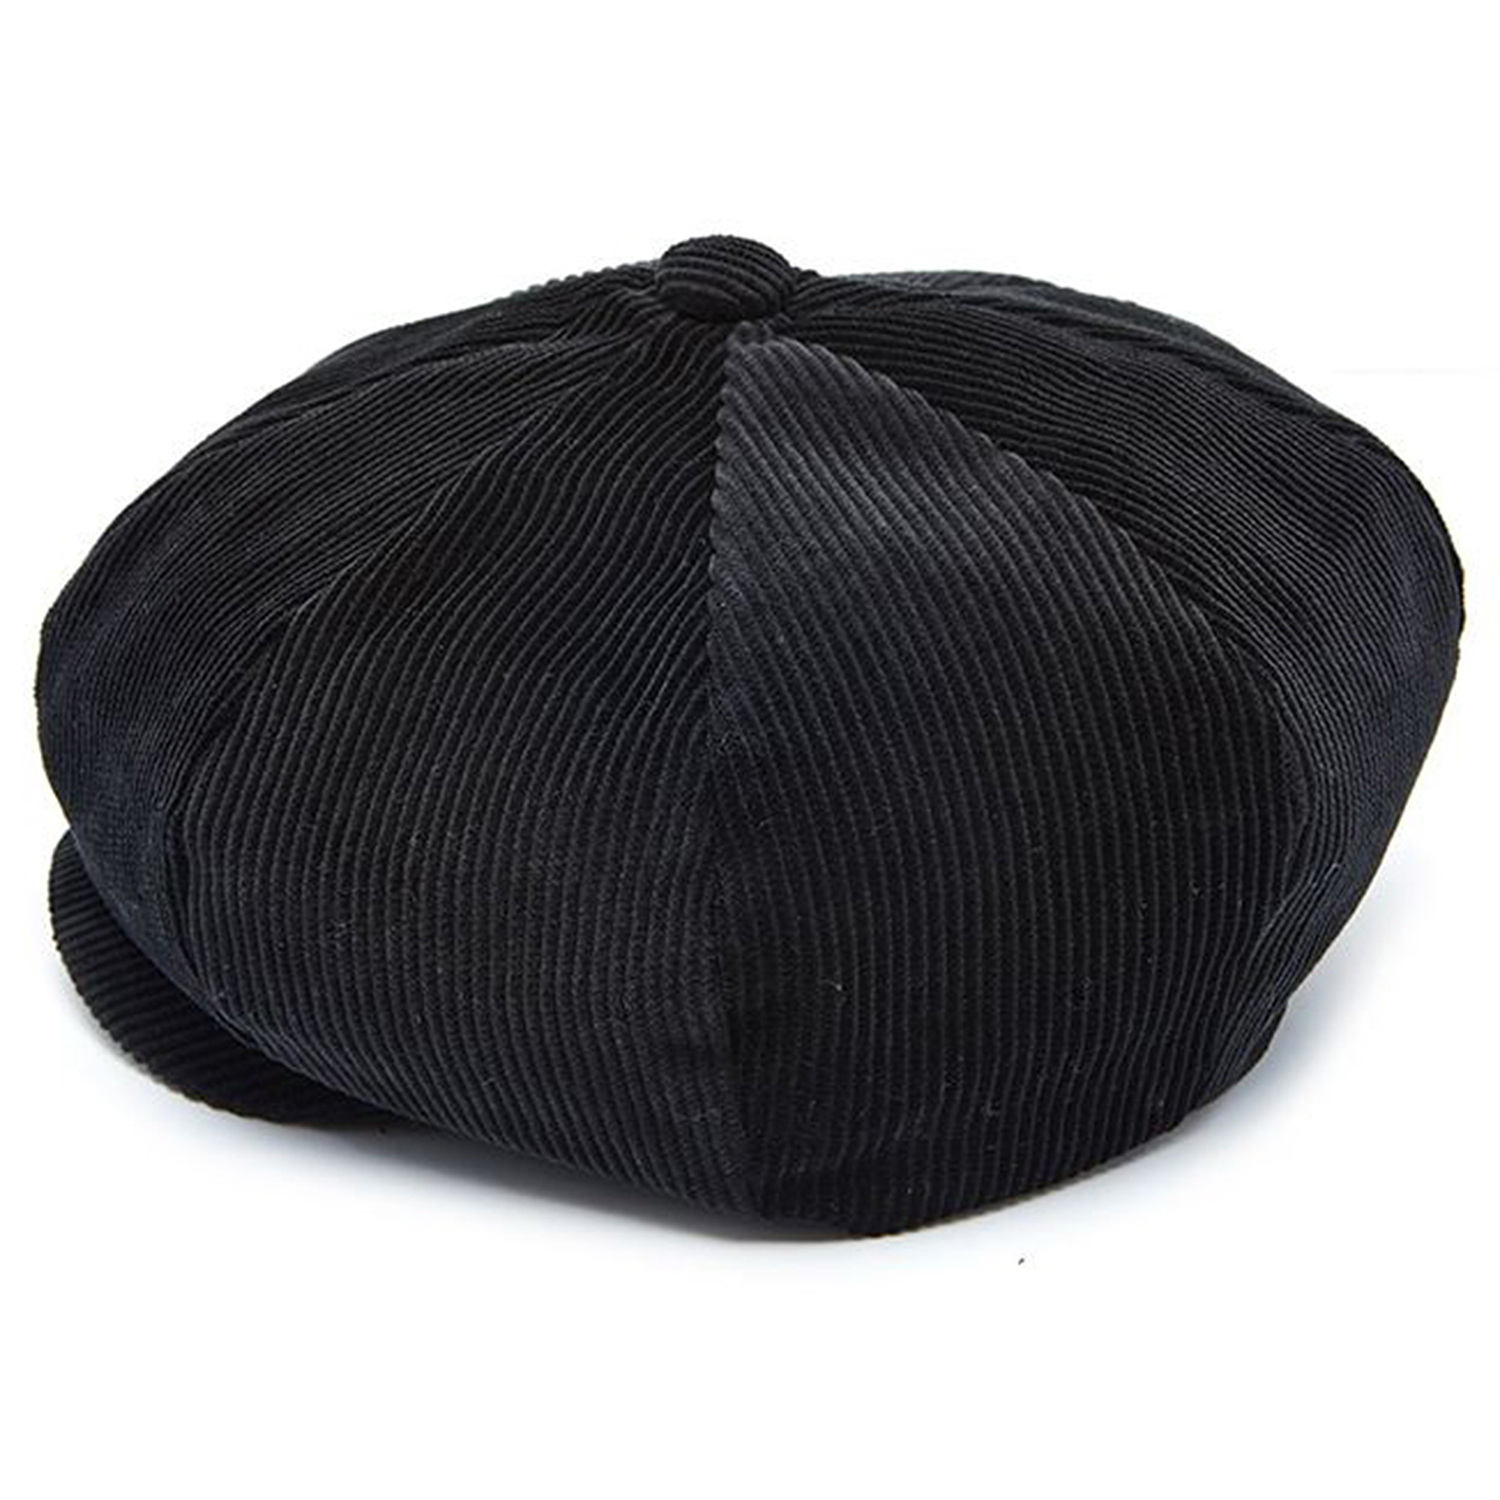 Millionairehats - needle cord big apple hat - black